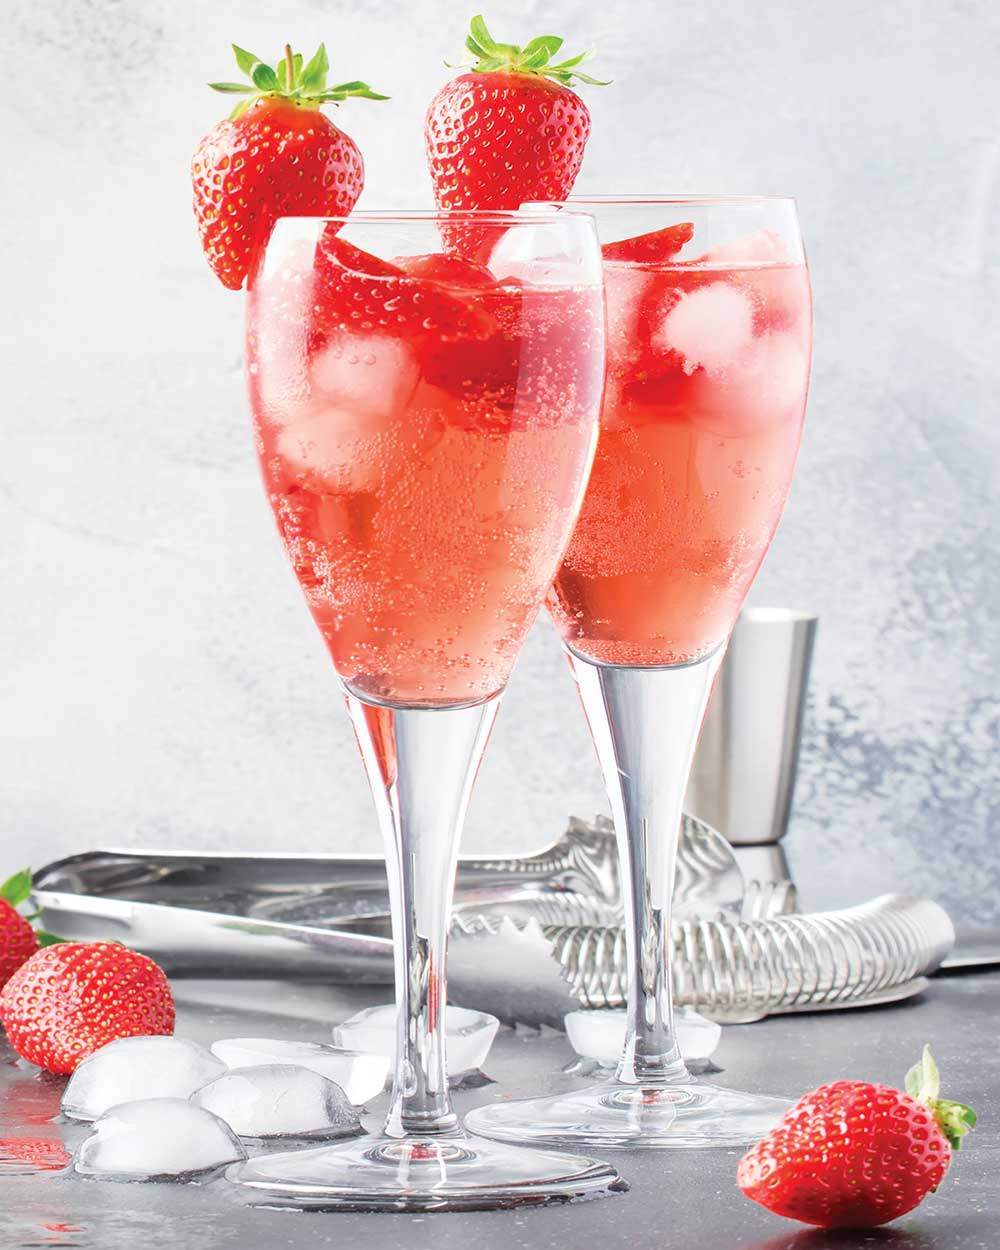 Champagne Cocktails with Strawberry Puree